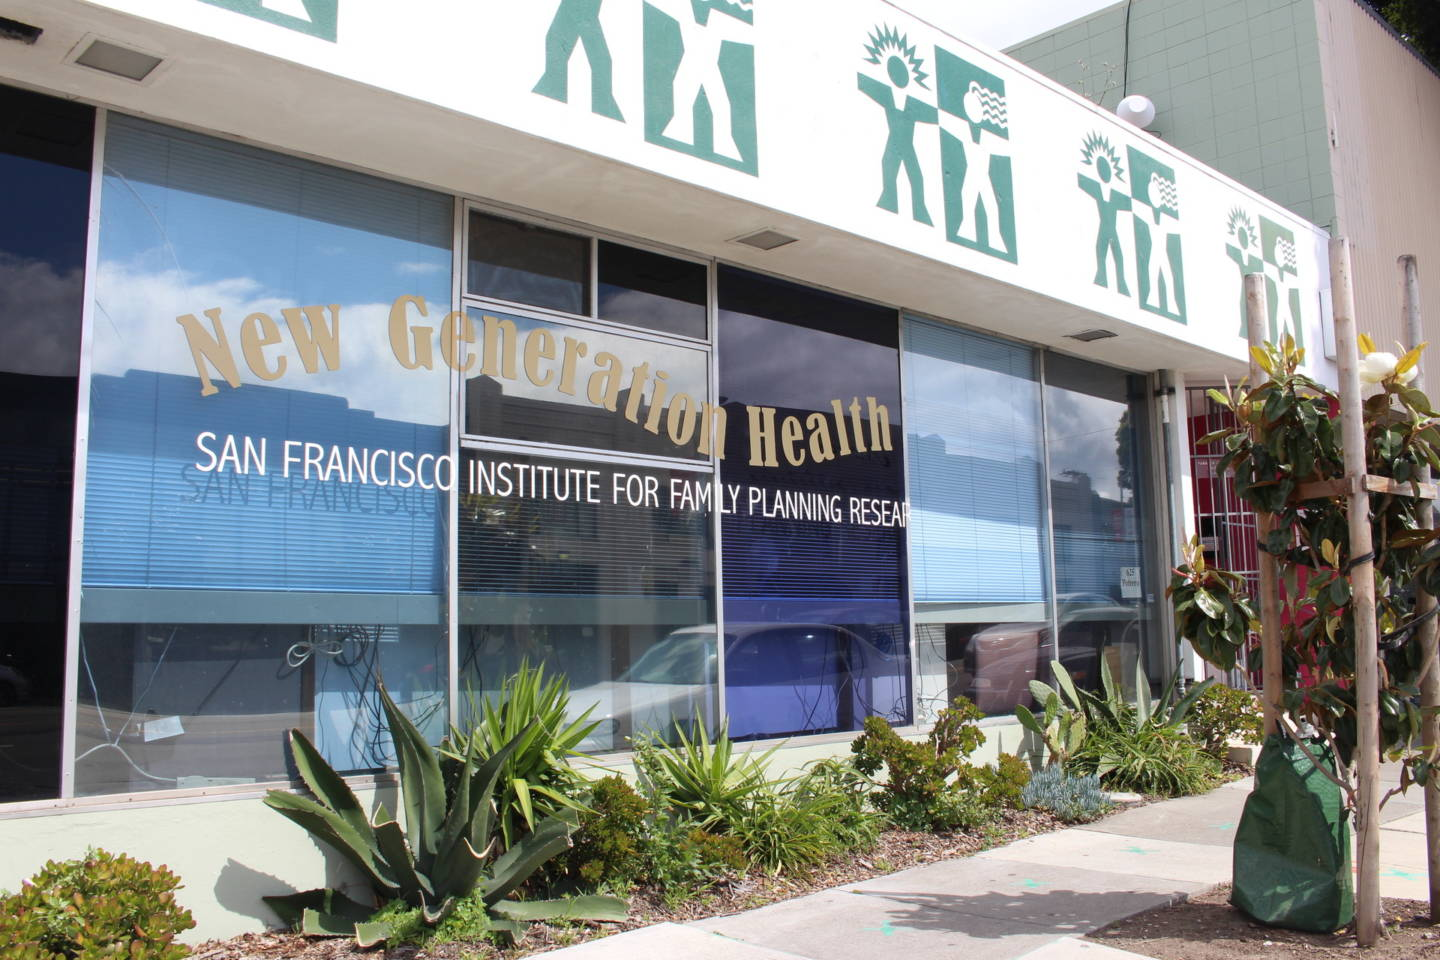 Women's Health Clinics in California Struggle in a Shifting Health Care Landscape